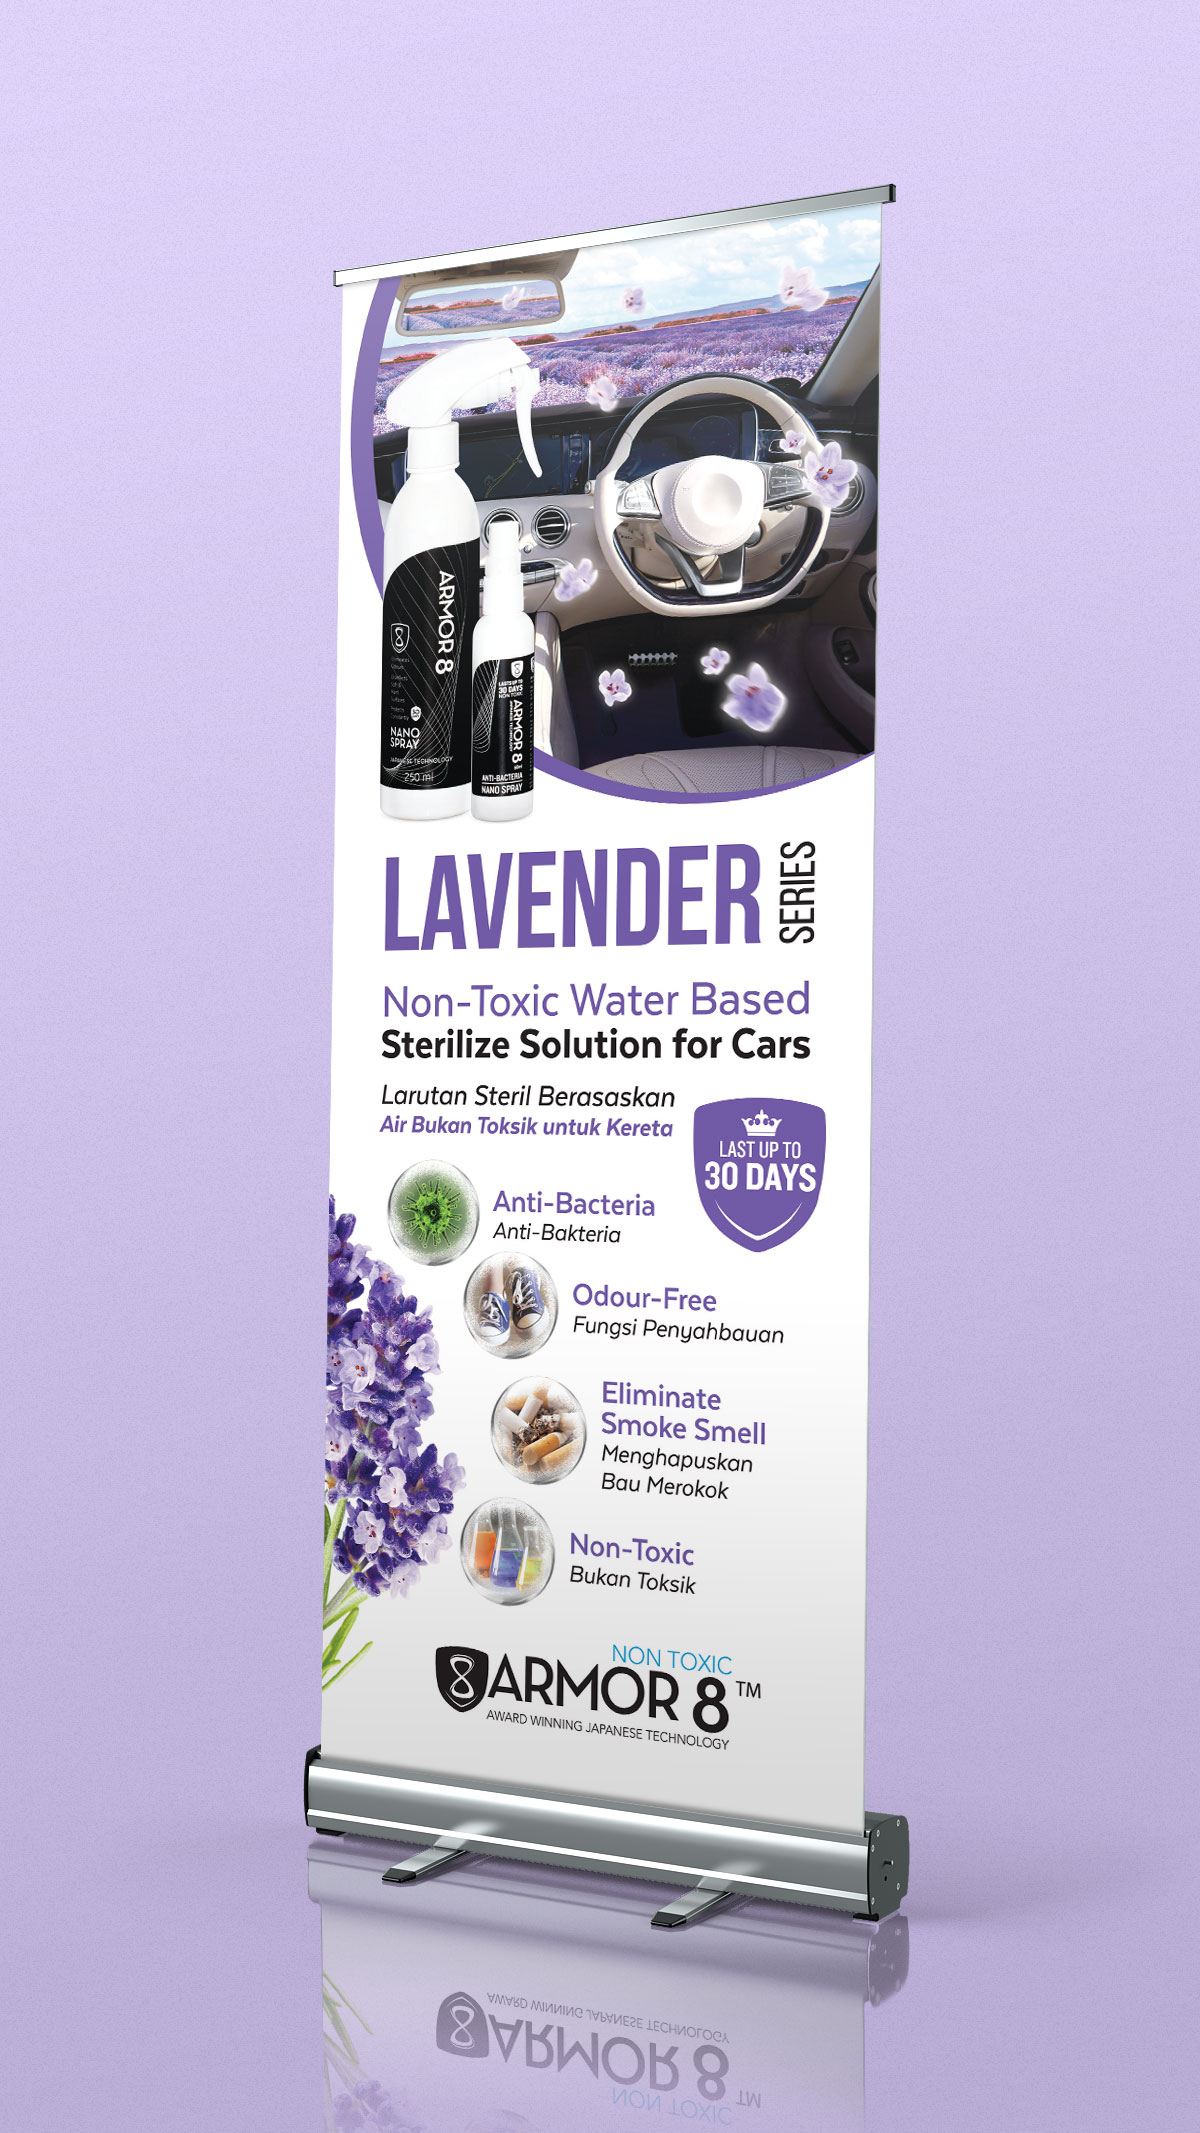 Armor8 Lavender Series for Cars Roll-Up Banner Design 06